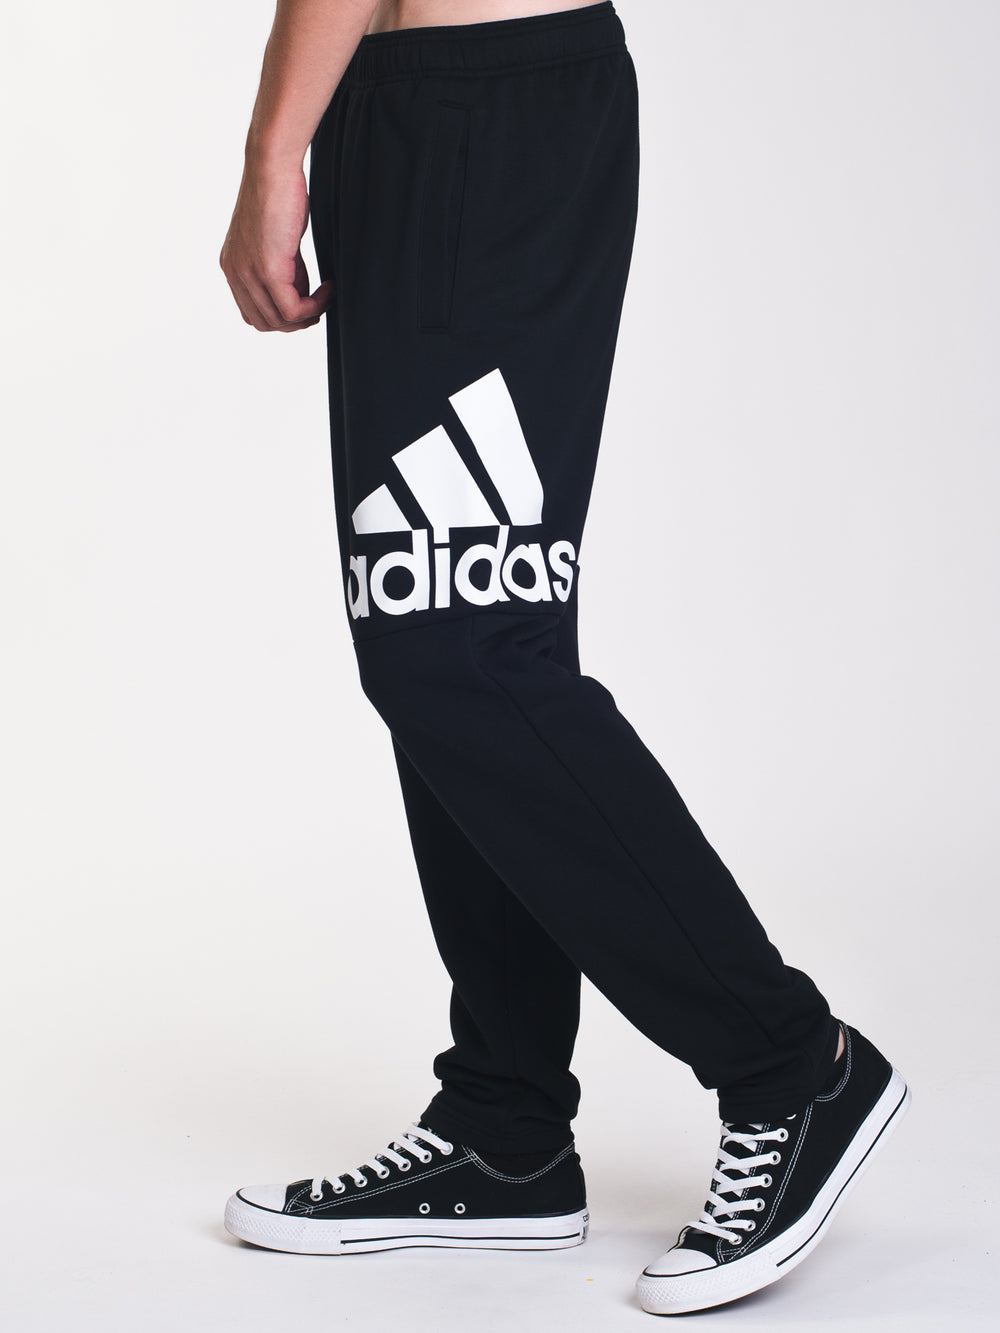 MENS ESSENTIALS LOGO PANT - BLACK